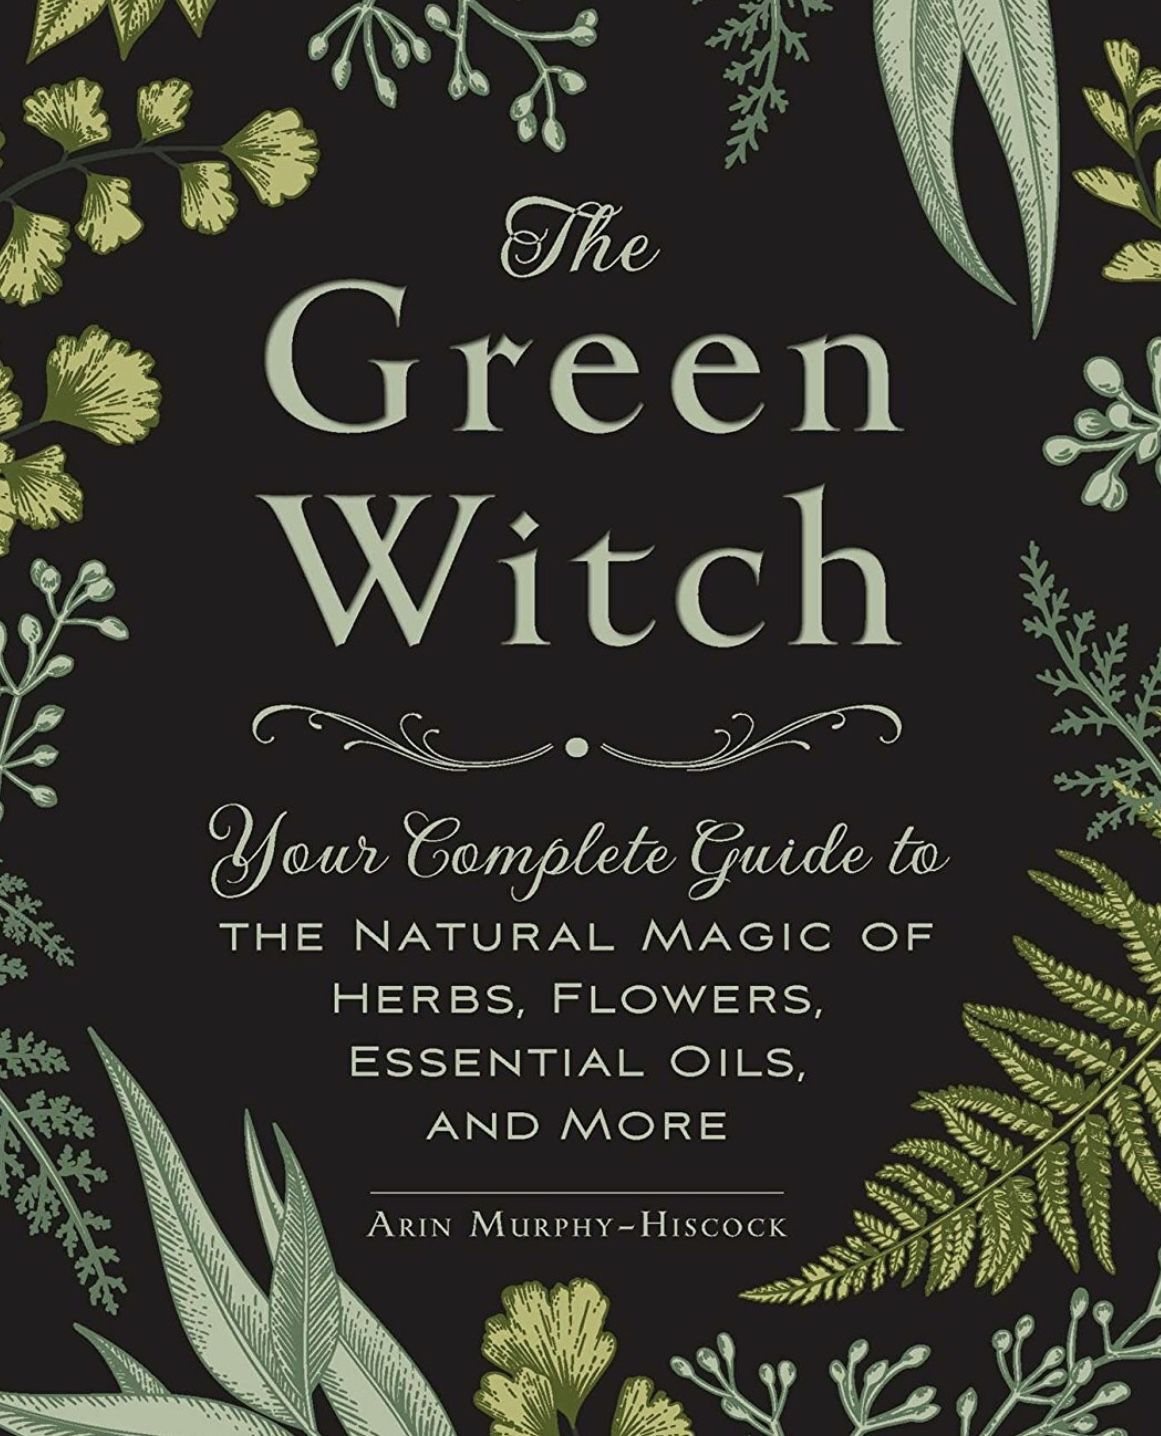 The Green Witch Book Series